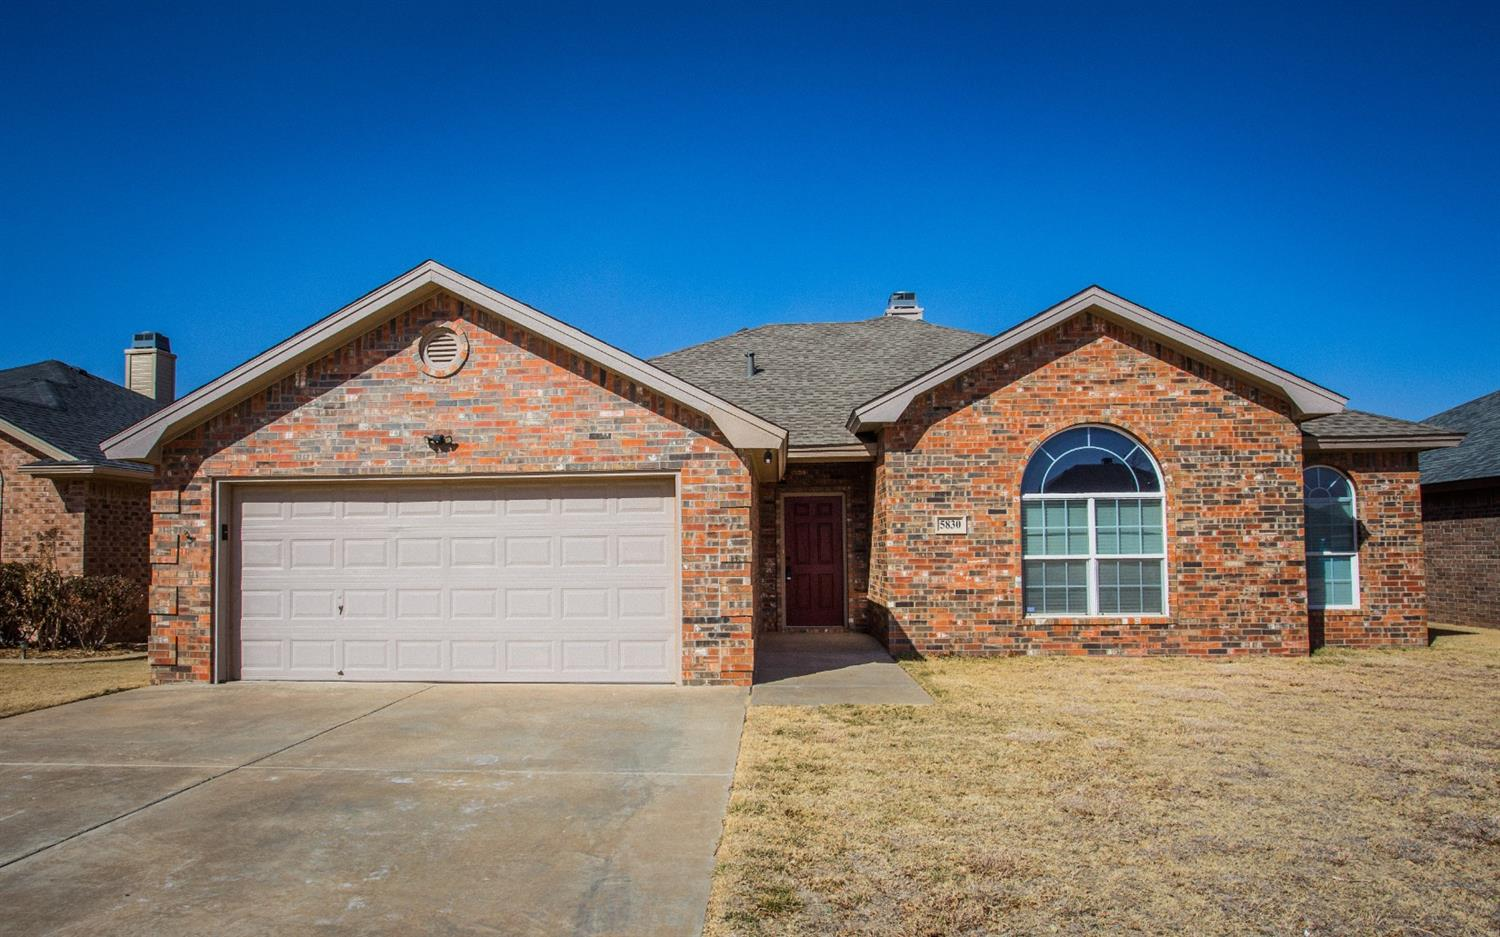 Don't miss this immaculate 4/2/2 in Lubbock-Cooper ISD in the well-loved Lakewood Estates.  This home boasts new vinyl plank flooring in the dining, living room, and kitchen areas.  The living room has a beautiful brick fireplace and the kitchen has its own eating area.  The master bedroom is a great size with a master bathroom that has double sinks and a large closet.  The three other bedrooms are the perfect size for children, guests, or even an office.  The backyard has plenty of room for a playset or trampoline. It's a beautiful home ready for a new owner!  Bring your clients today!